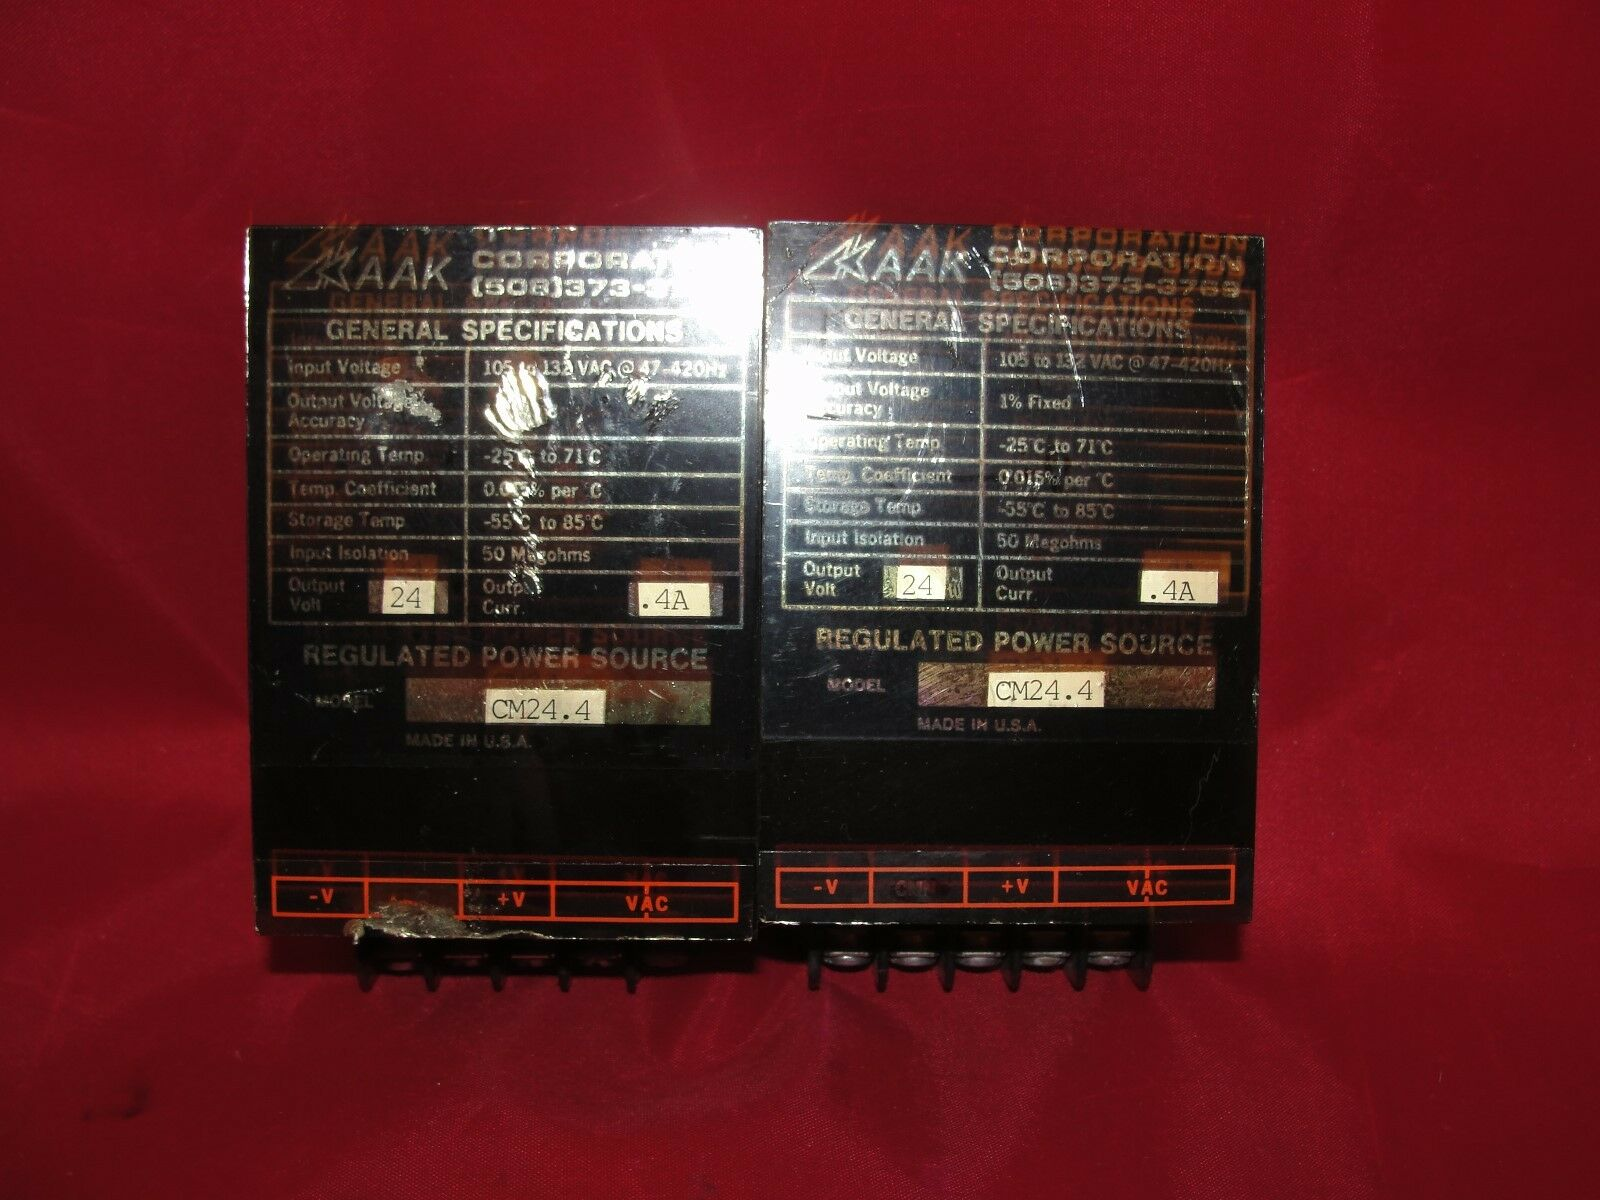 AAK Regulated Power Source CM24.4 Lot of 2 105-132 VAC 24V .4A